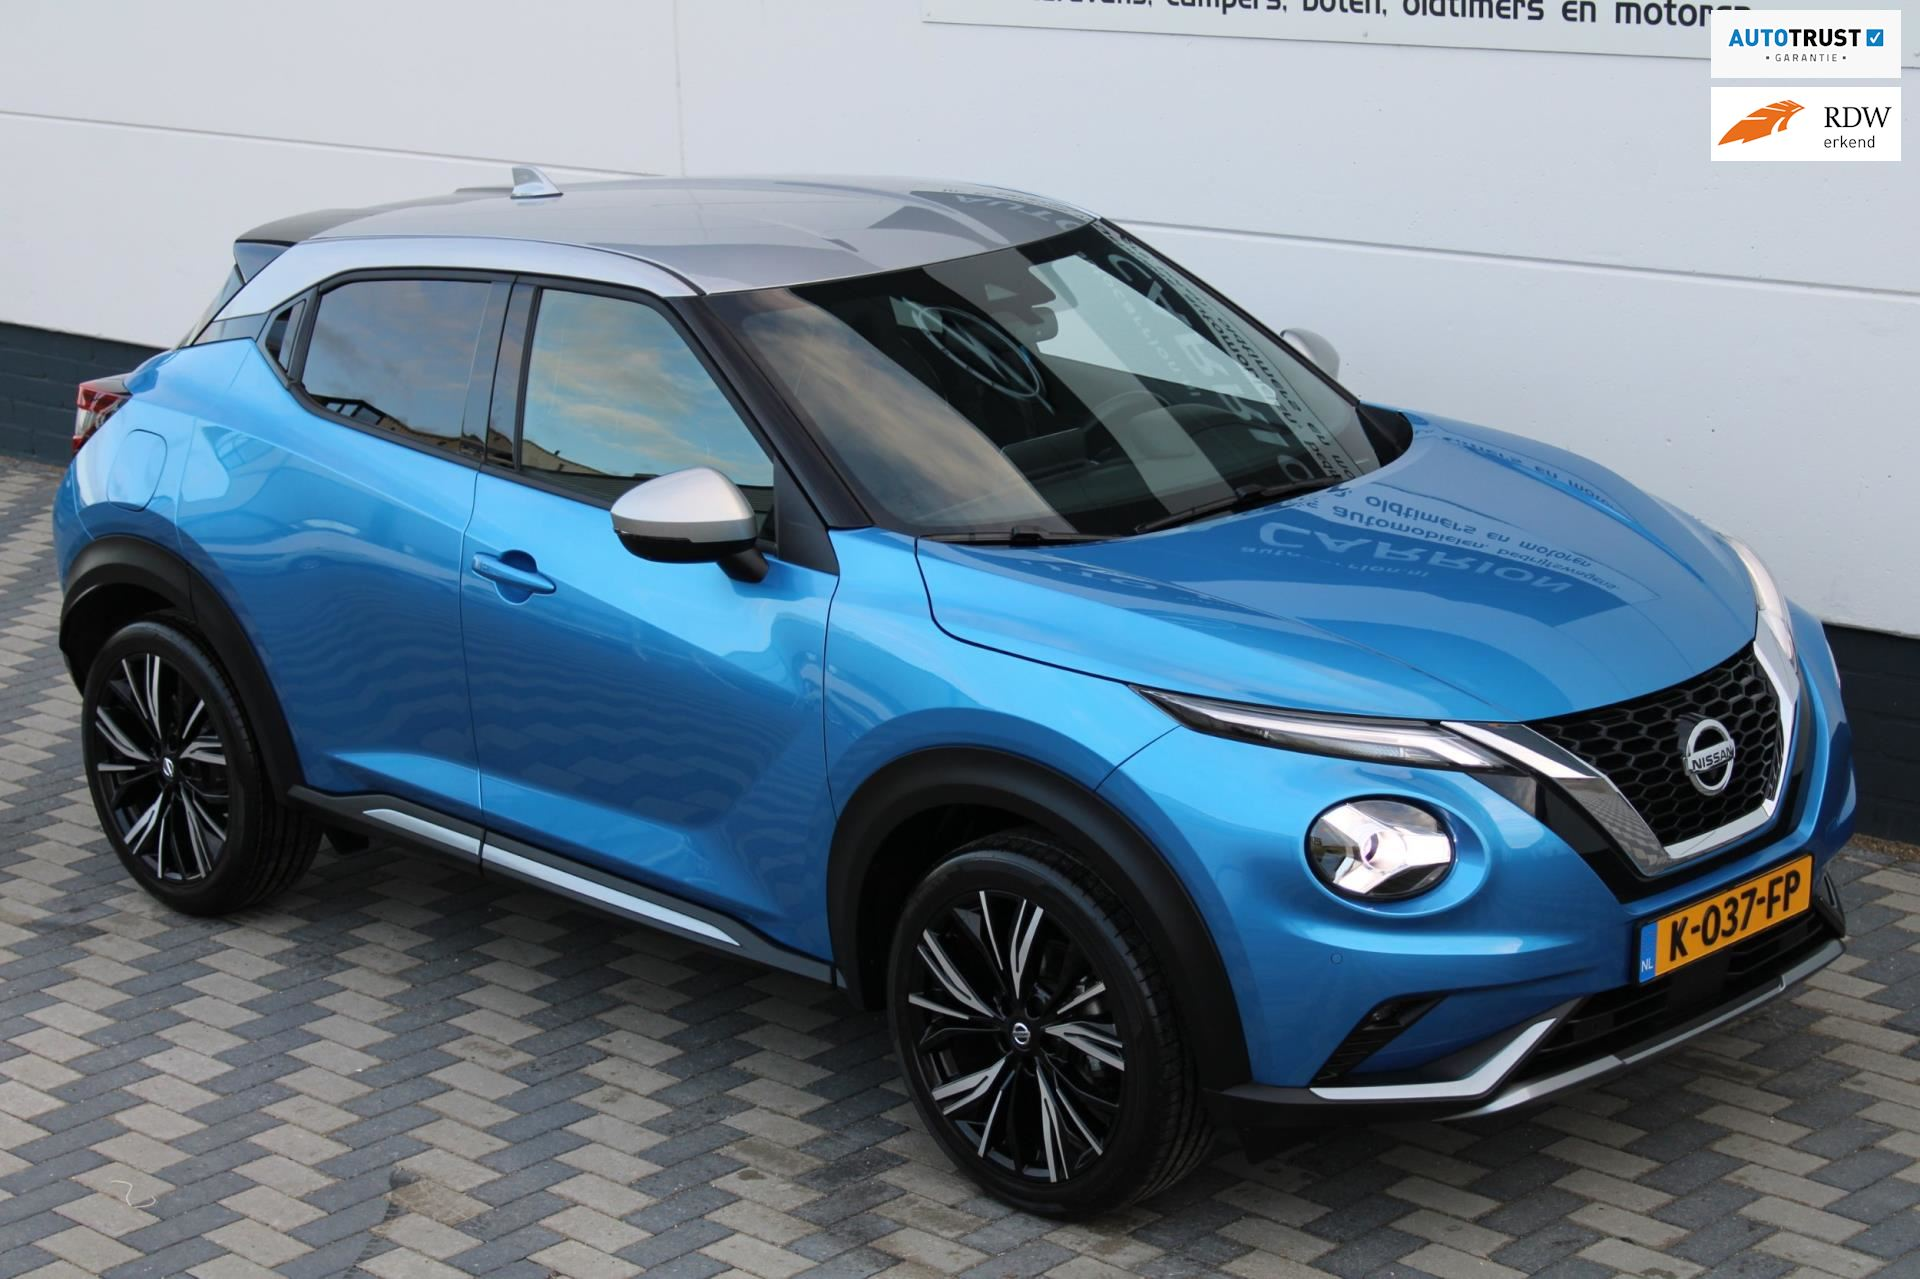 Nissan Juke occasion - CARRION